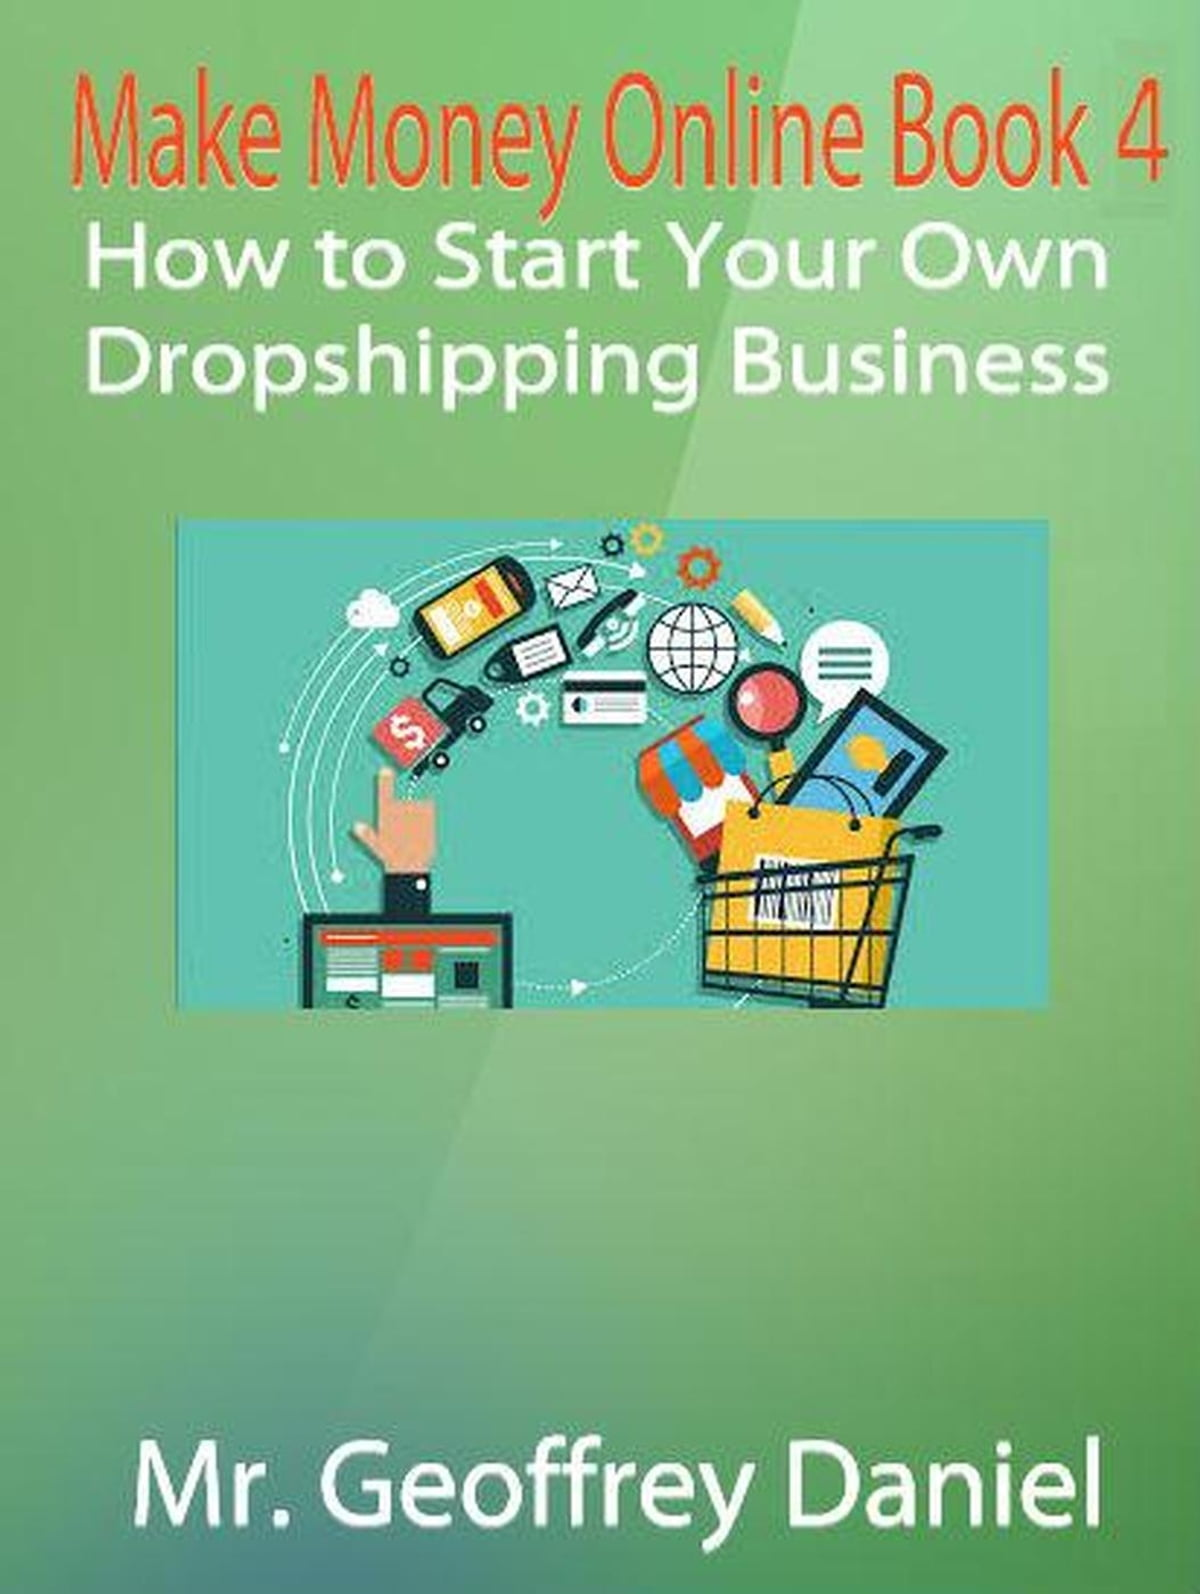 Make Money Online Book 4 – How to Start Your Own Dropshipping Business  ebook by Geoffrey Daniel - Rakuten Kobo